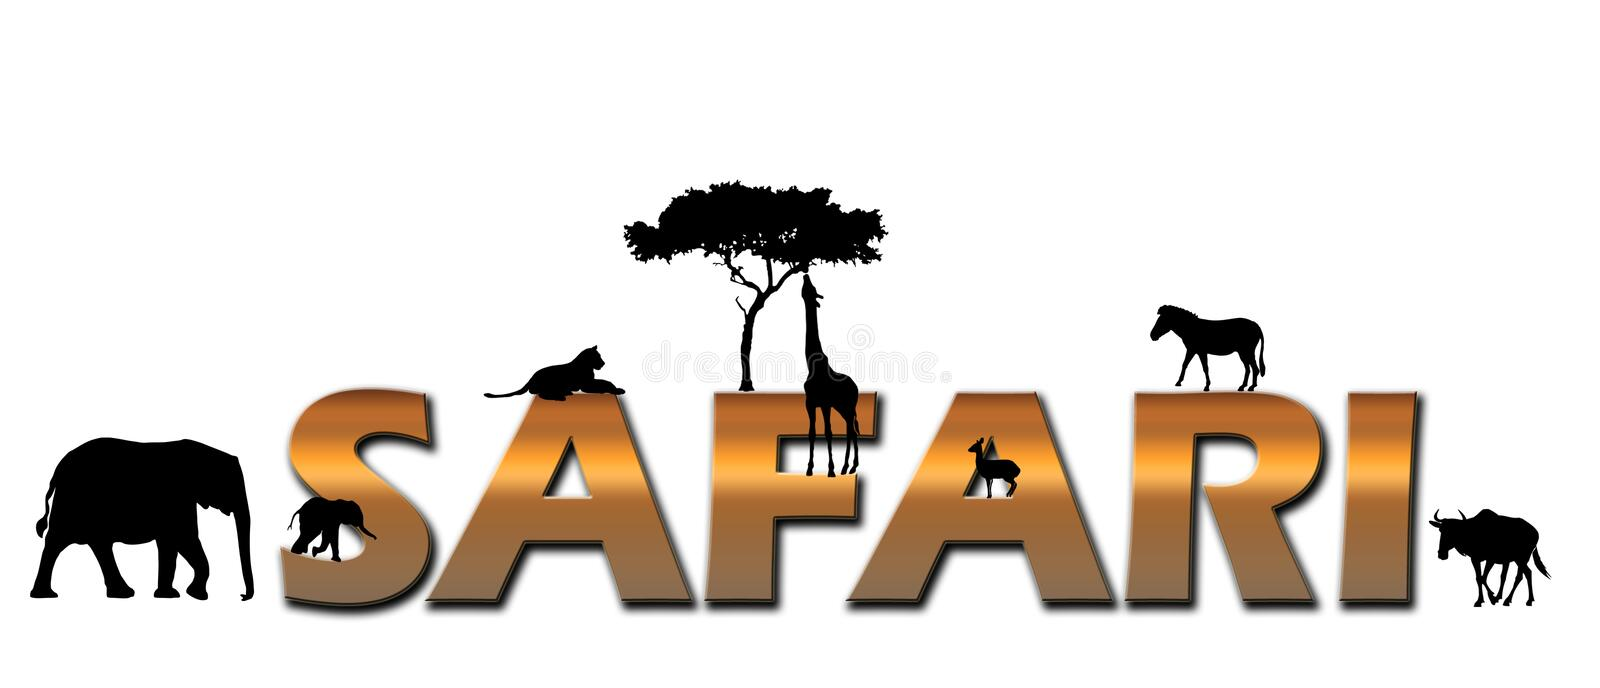 African Safari logo. Logo spelling out safari with animals surrounding the letters. Animals: Elephant mother and calf, Lioness, Giraffe eating from a acacia tree